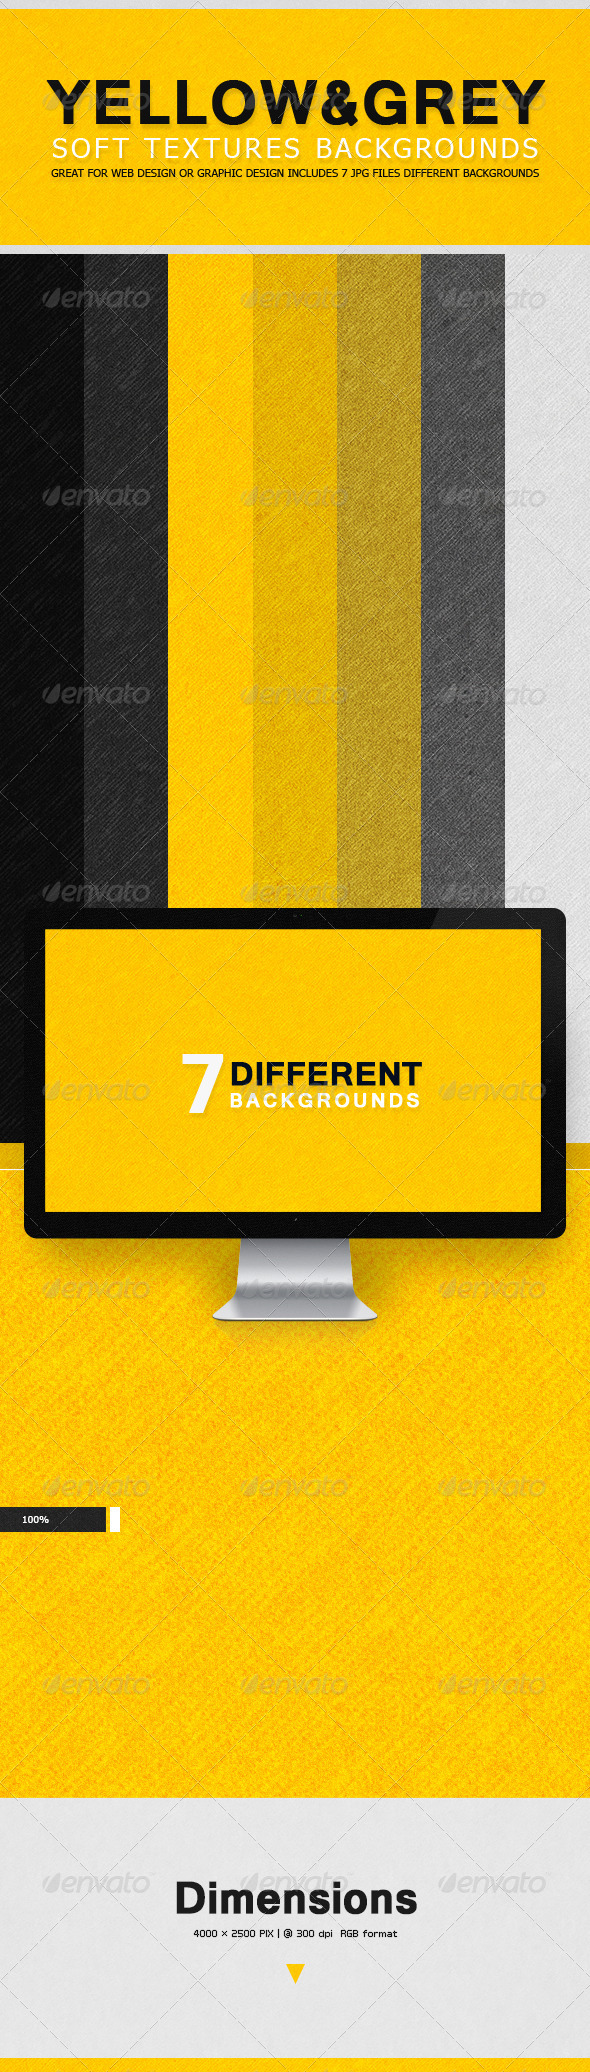 GraphicRiver Soft Textures Backgrounds Yellow & Grey 7677291